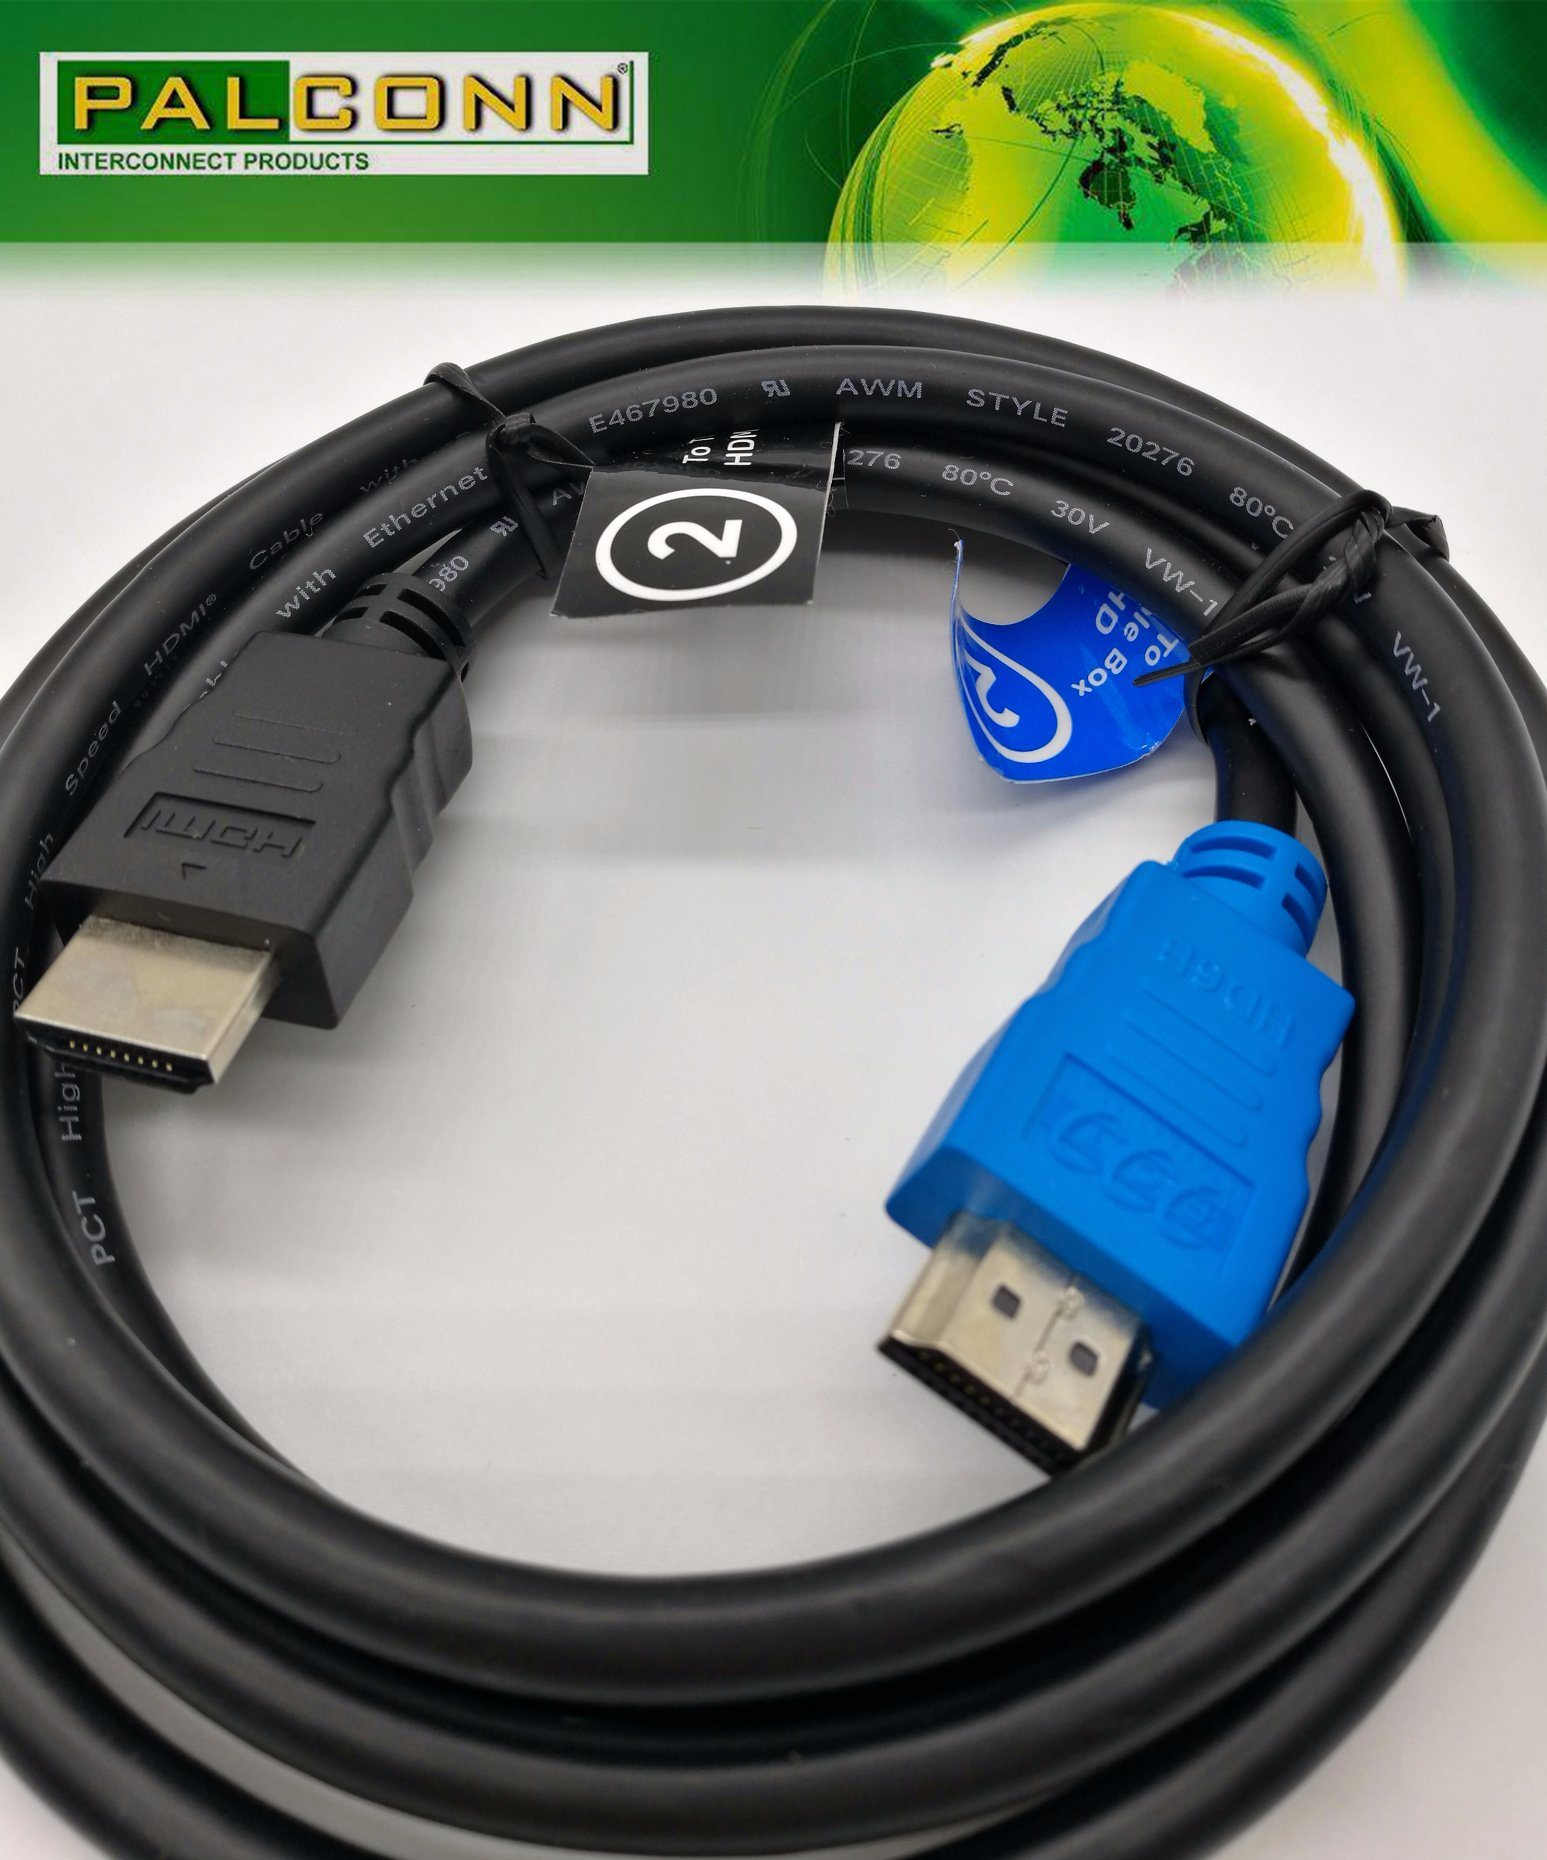 HDMI Cable Length: 1800mm ODM Customized Customer Logo